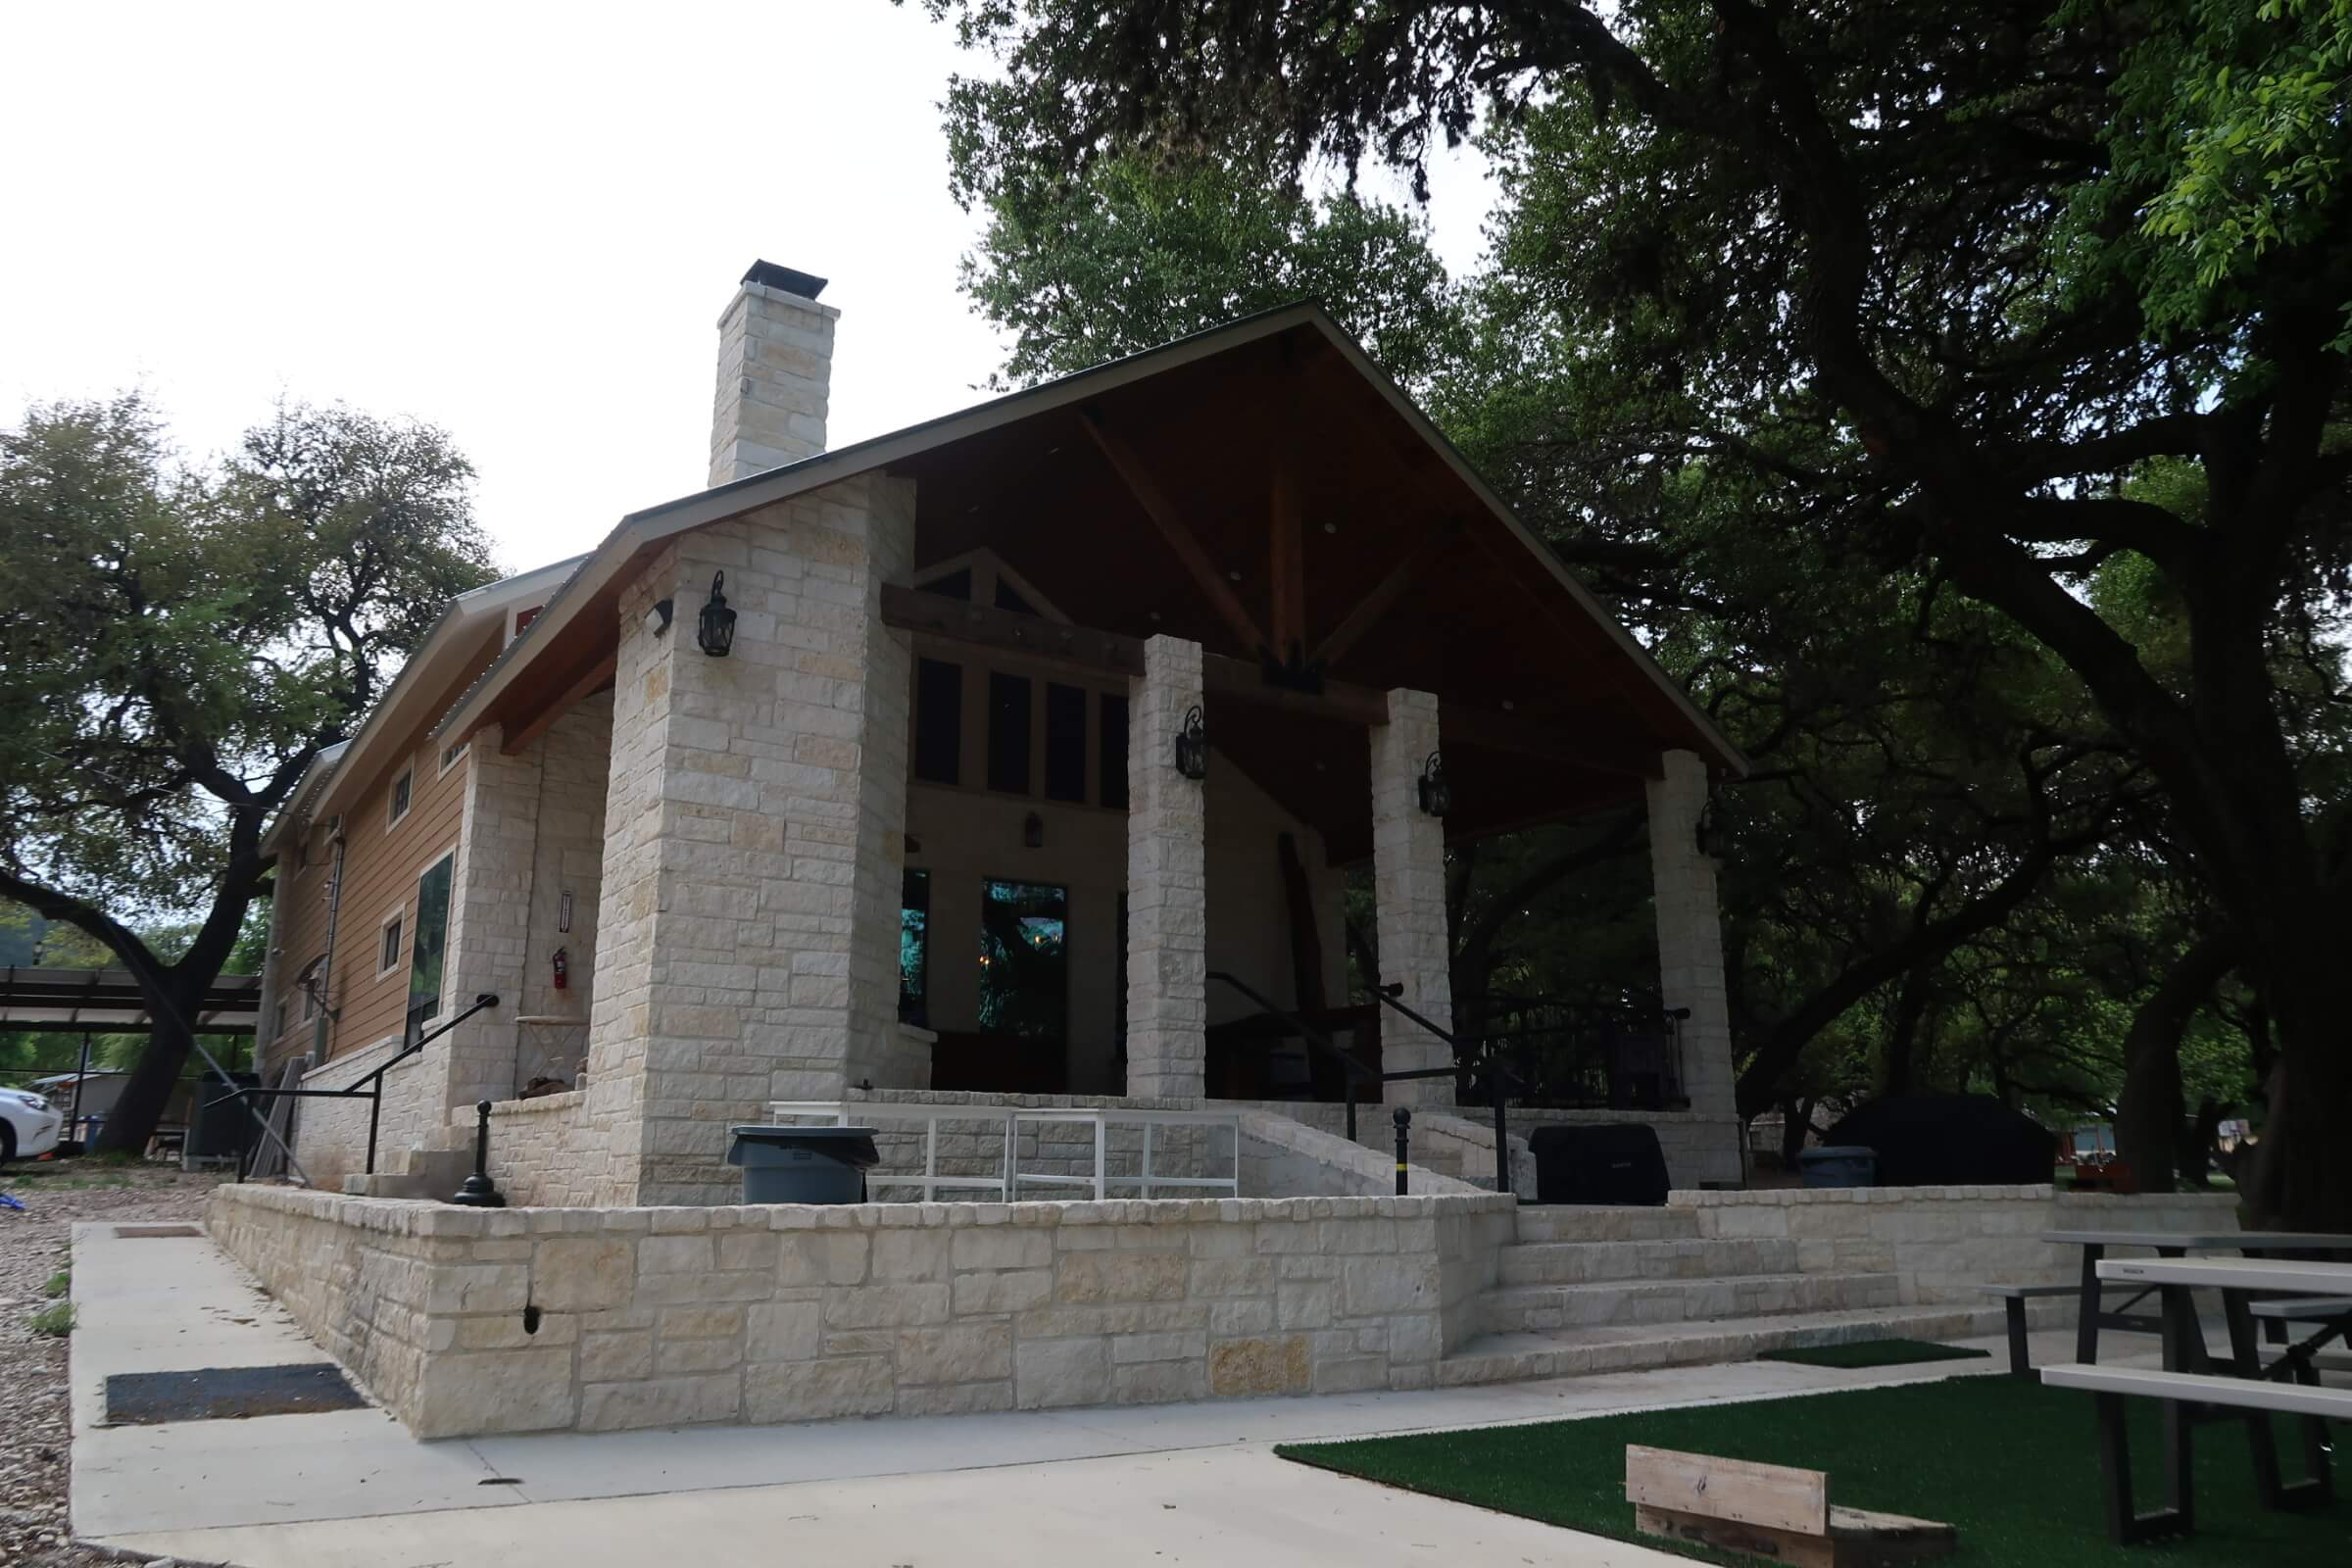 Vacation Frio River's Porter House is the perfect option for any family or large girl's getaway